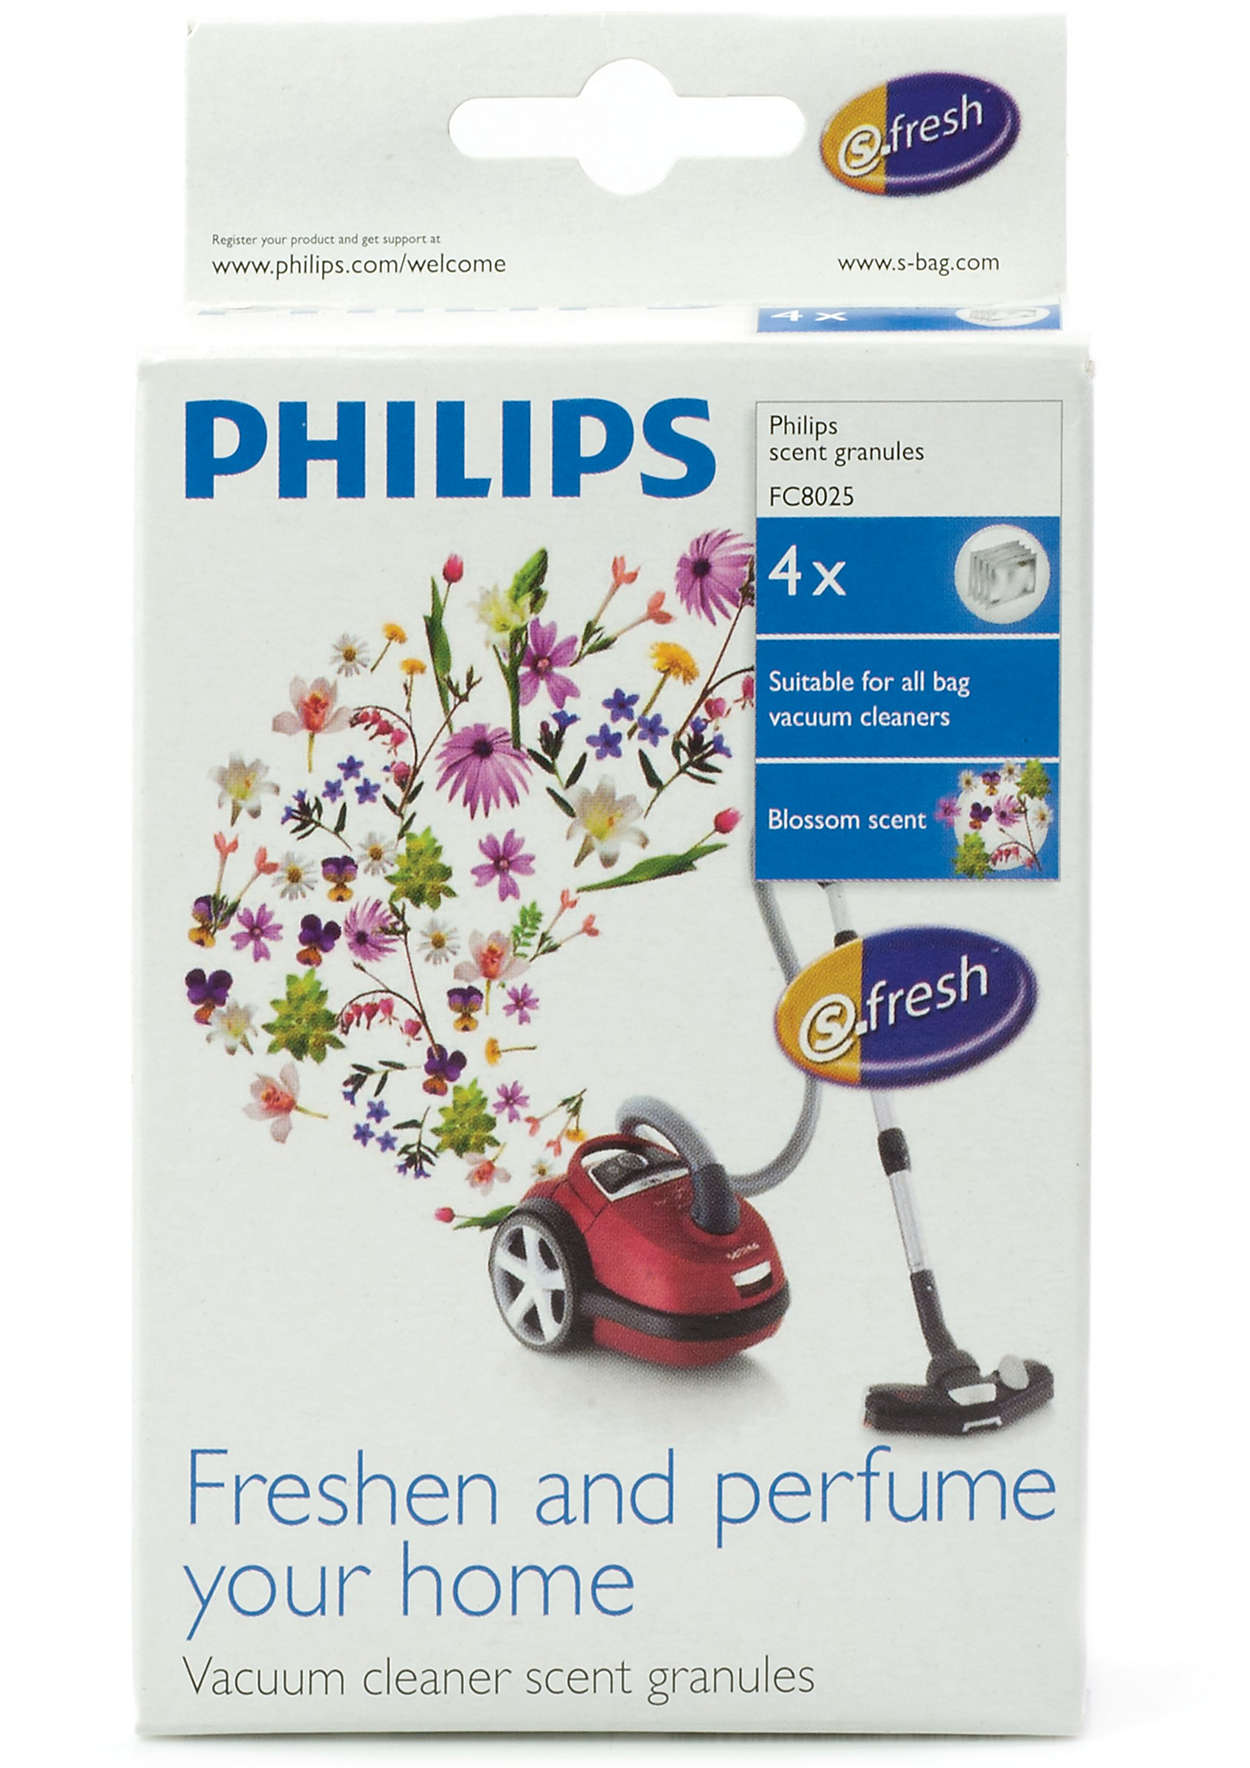 Freshen and perfume your home